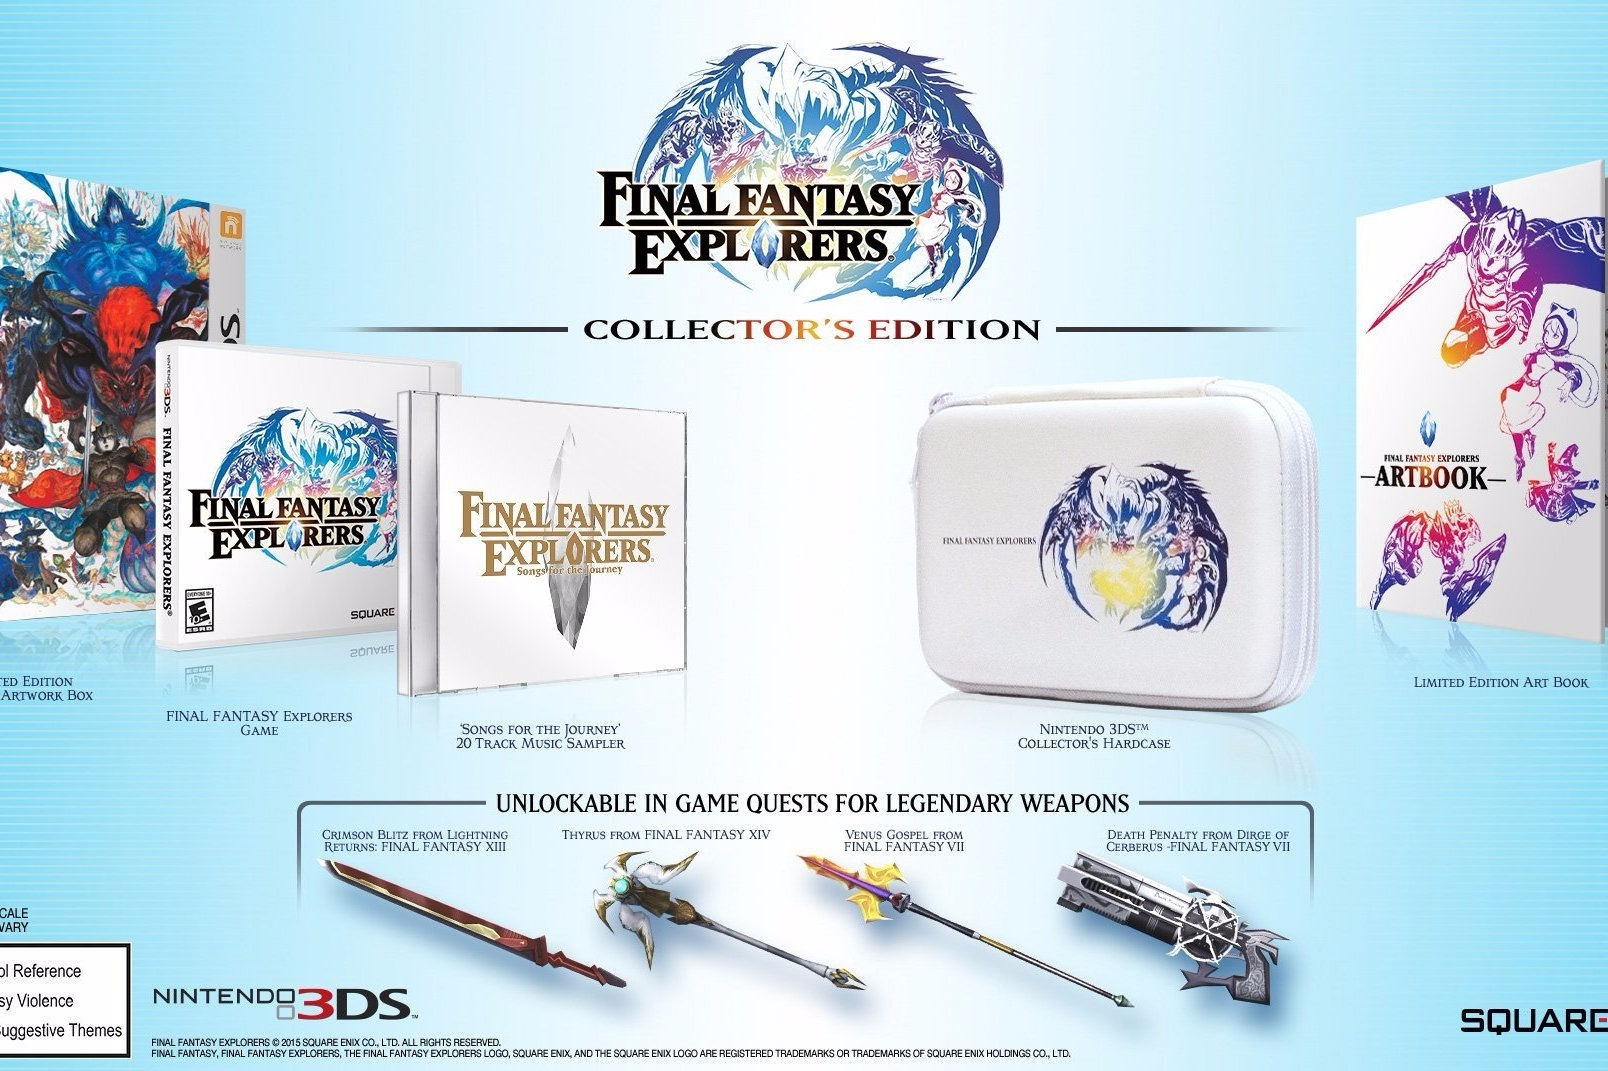 Modojo | Final Fantasy Explorers Collector's Edition Gets Detailed